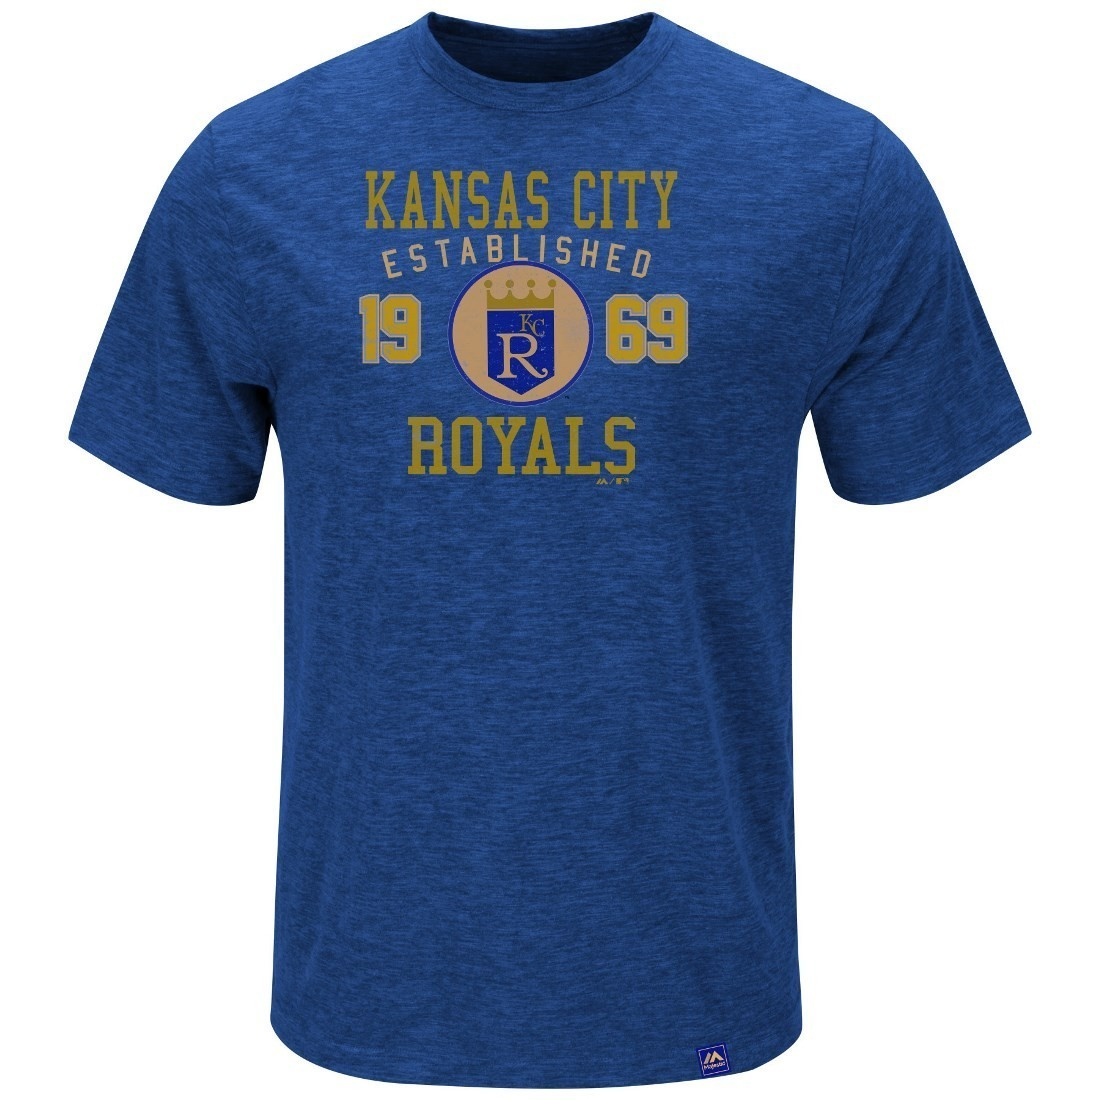 Kansas City Royals Majestic MLB Heads Or Tails Cooperstown Hyper Slub S/S Shirt